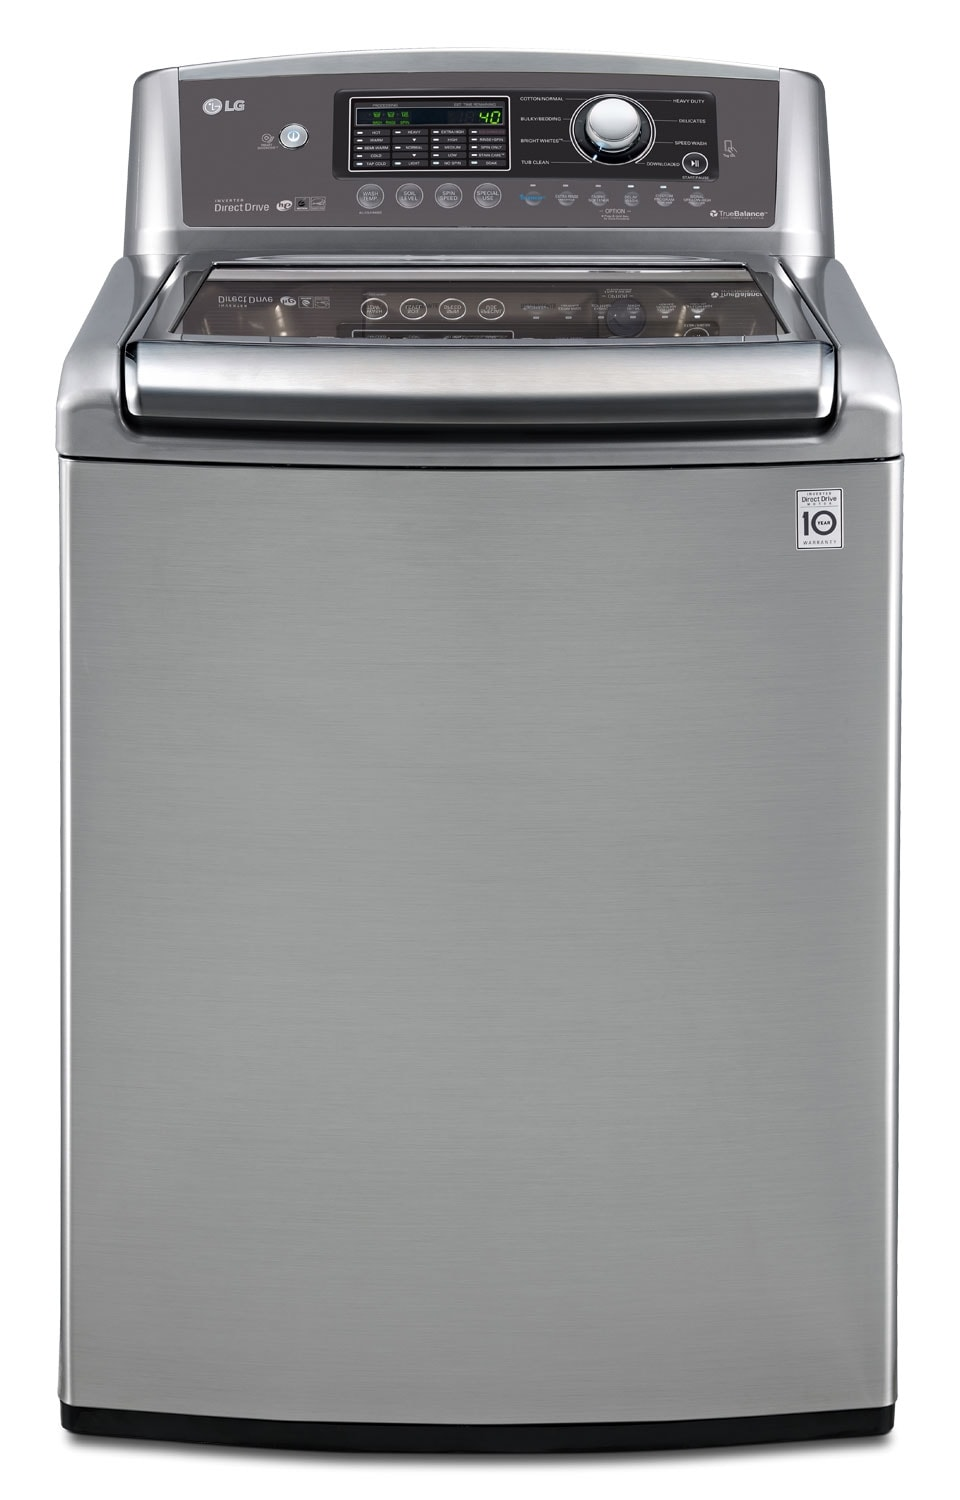 LG Appliances Graphite Steel Top-Load Washer (5.6 Cu. Ft. IEC) - WT5270CV